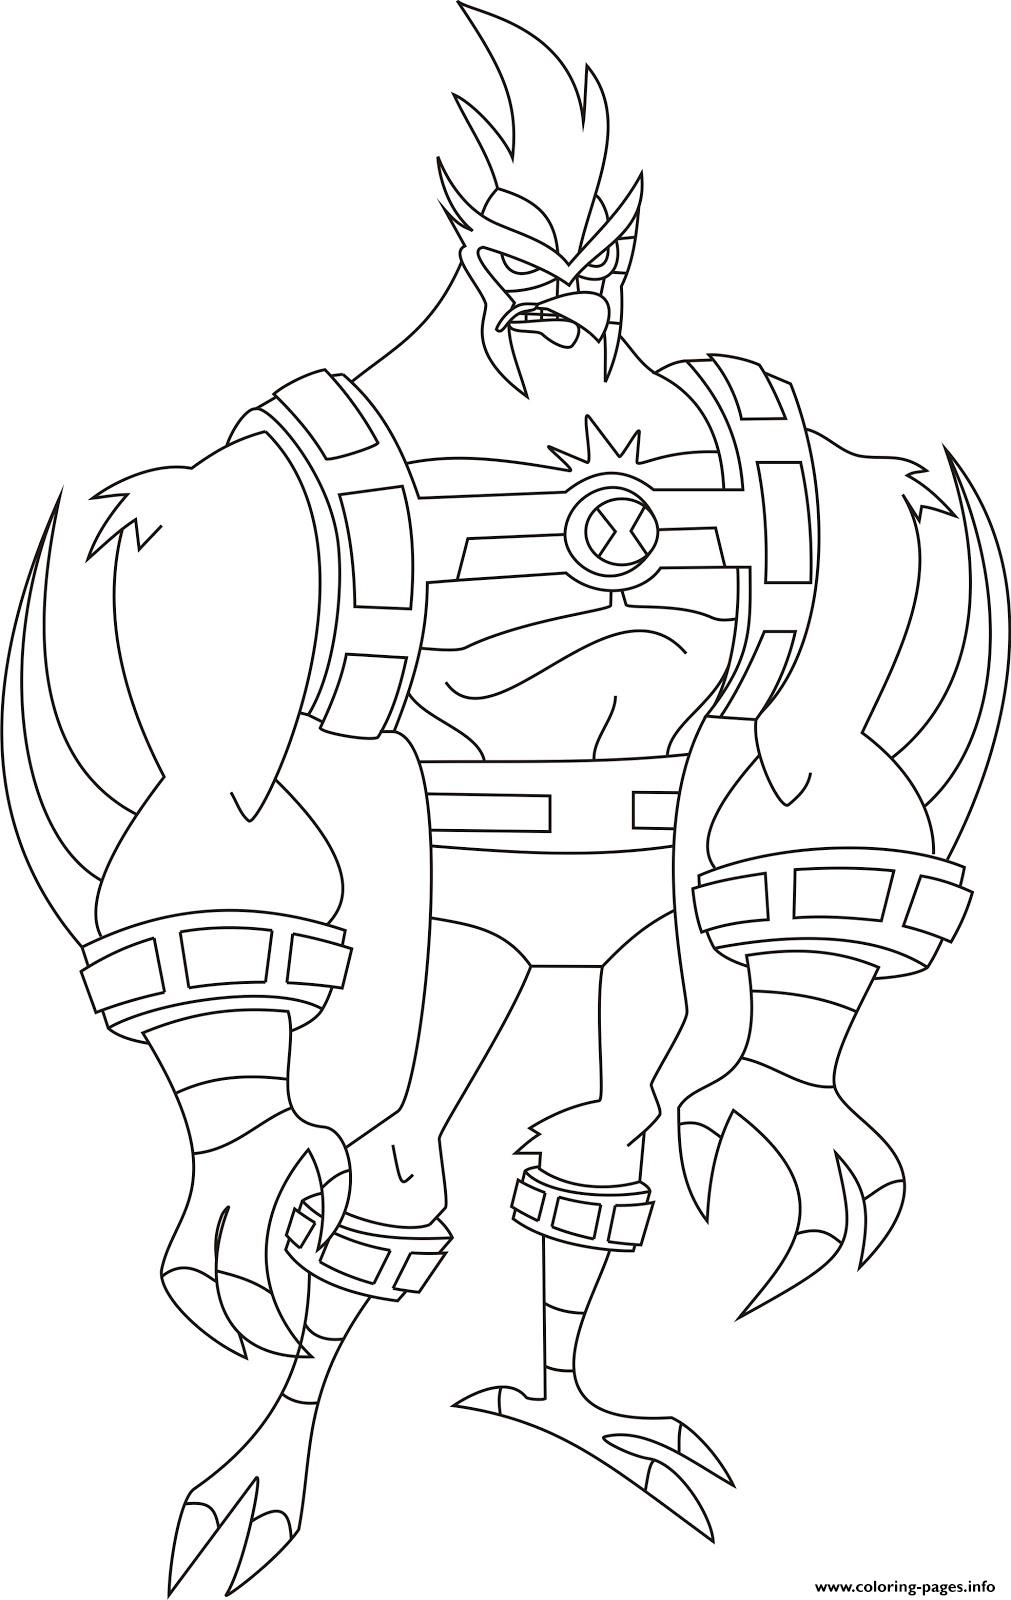 Dessin Ben 10 27 Coloring Pages Printable